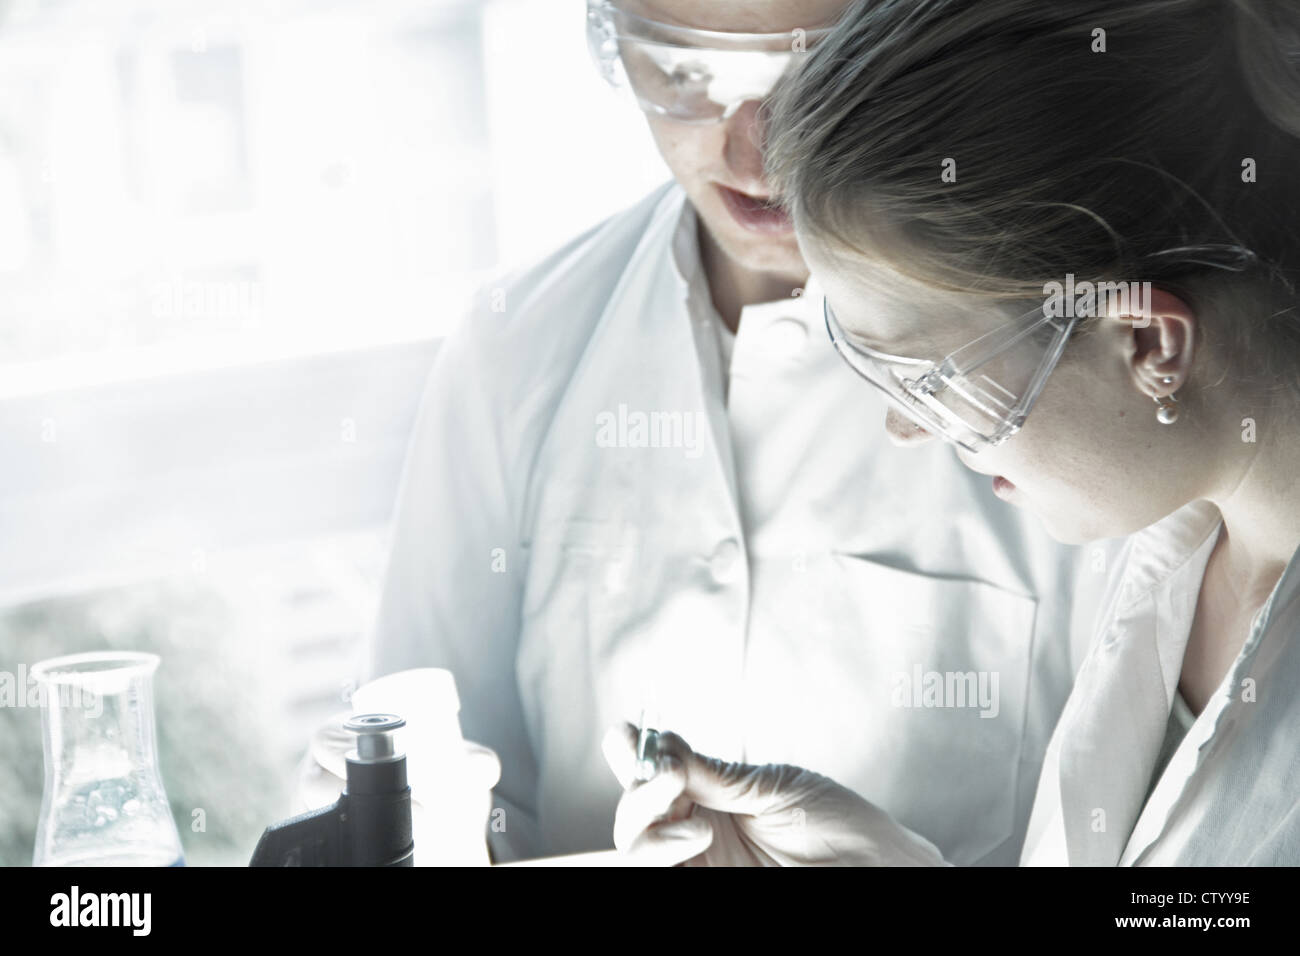 Scientists examining test tube in lab - Stock Image